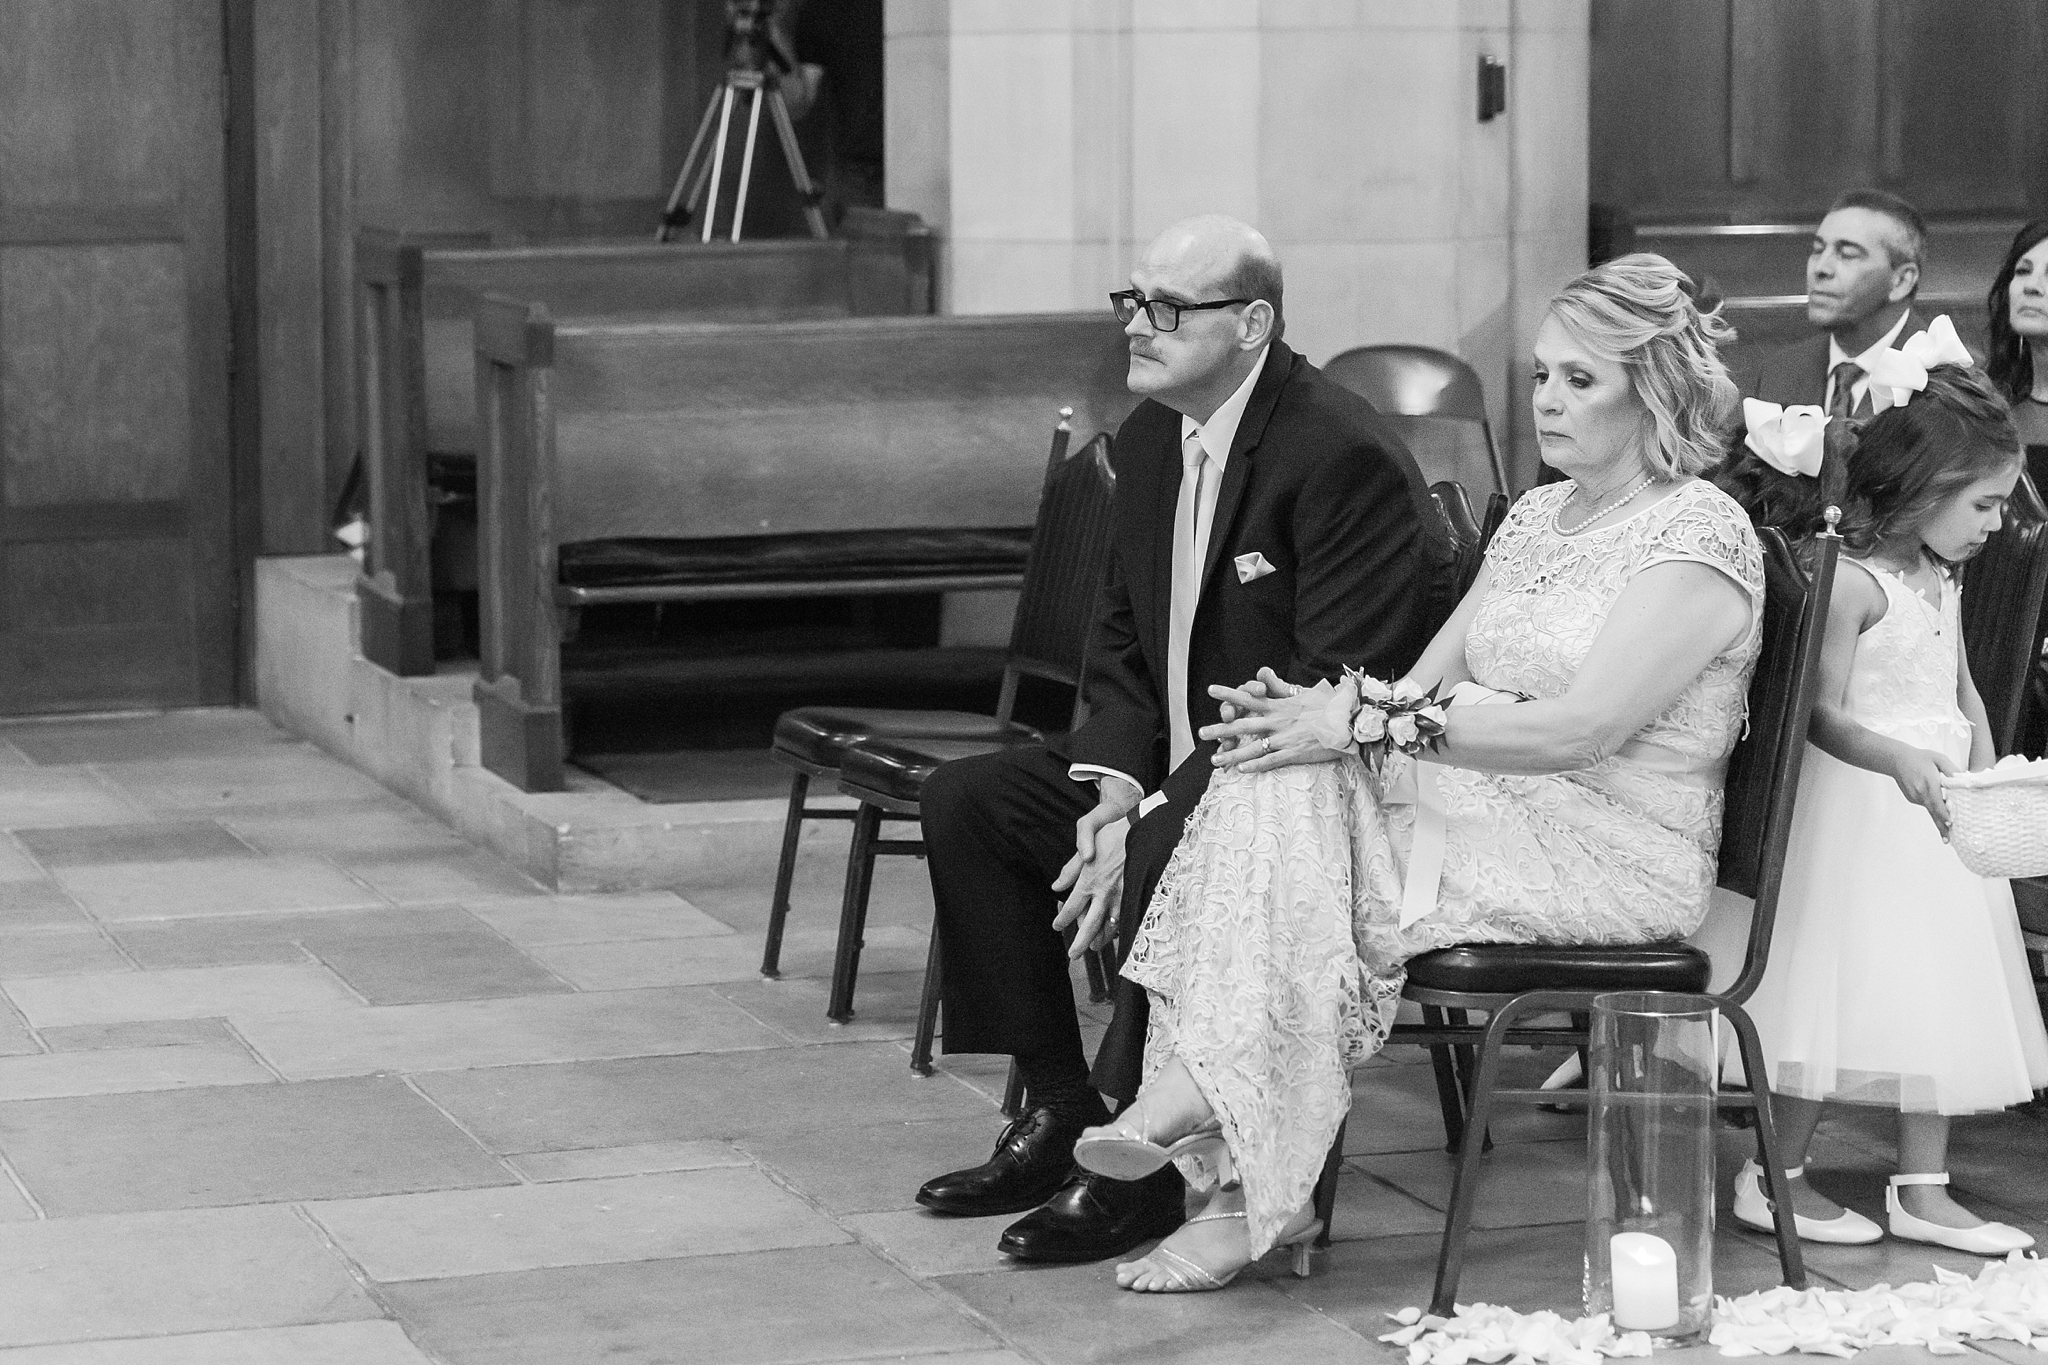 candid-romantic-wedding-photos-at-the-masonic-temple-belle-isle-detroit-institute-of-arts-in-detroit-michigan-by-courtney-carolyn-photography_0074.jpg